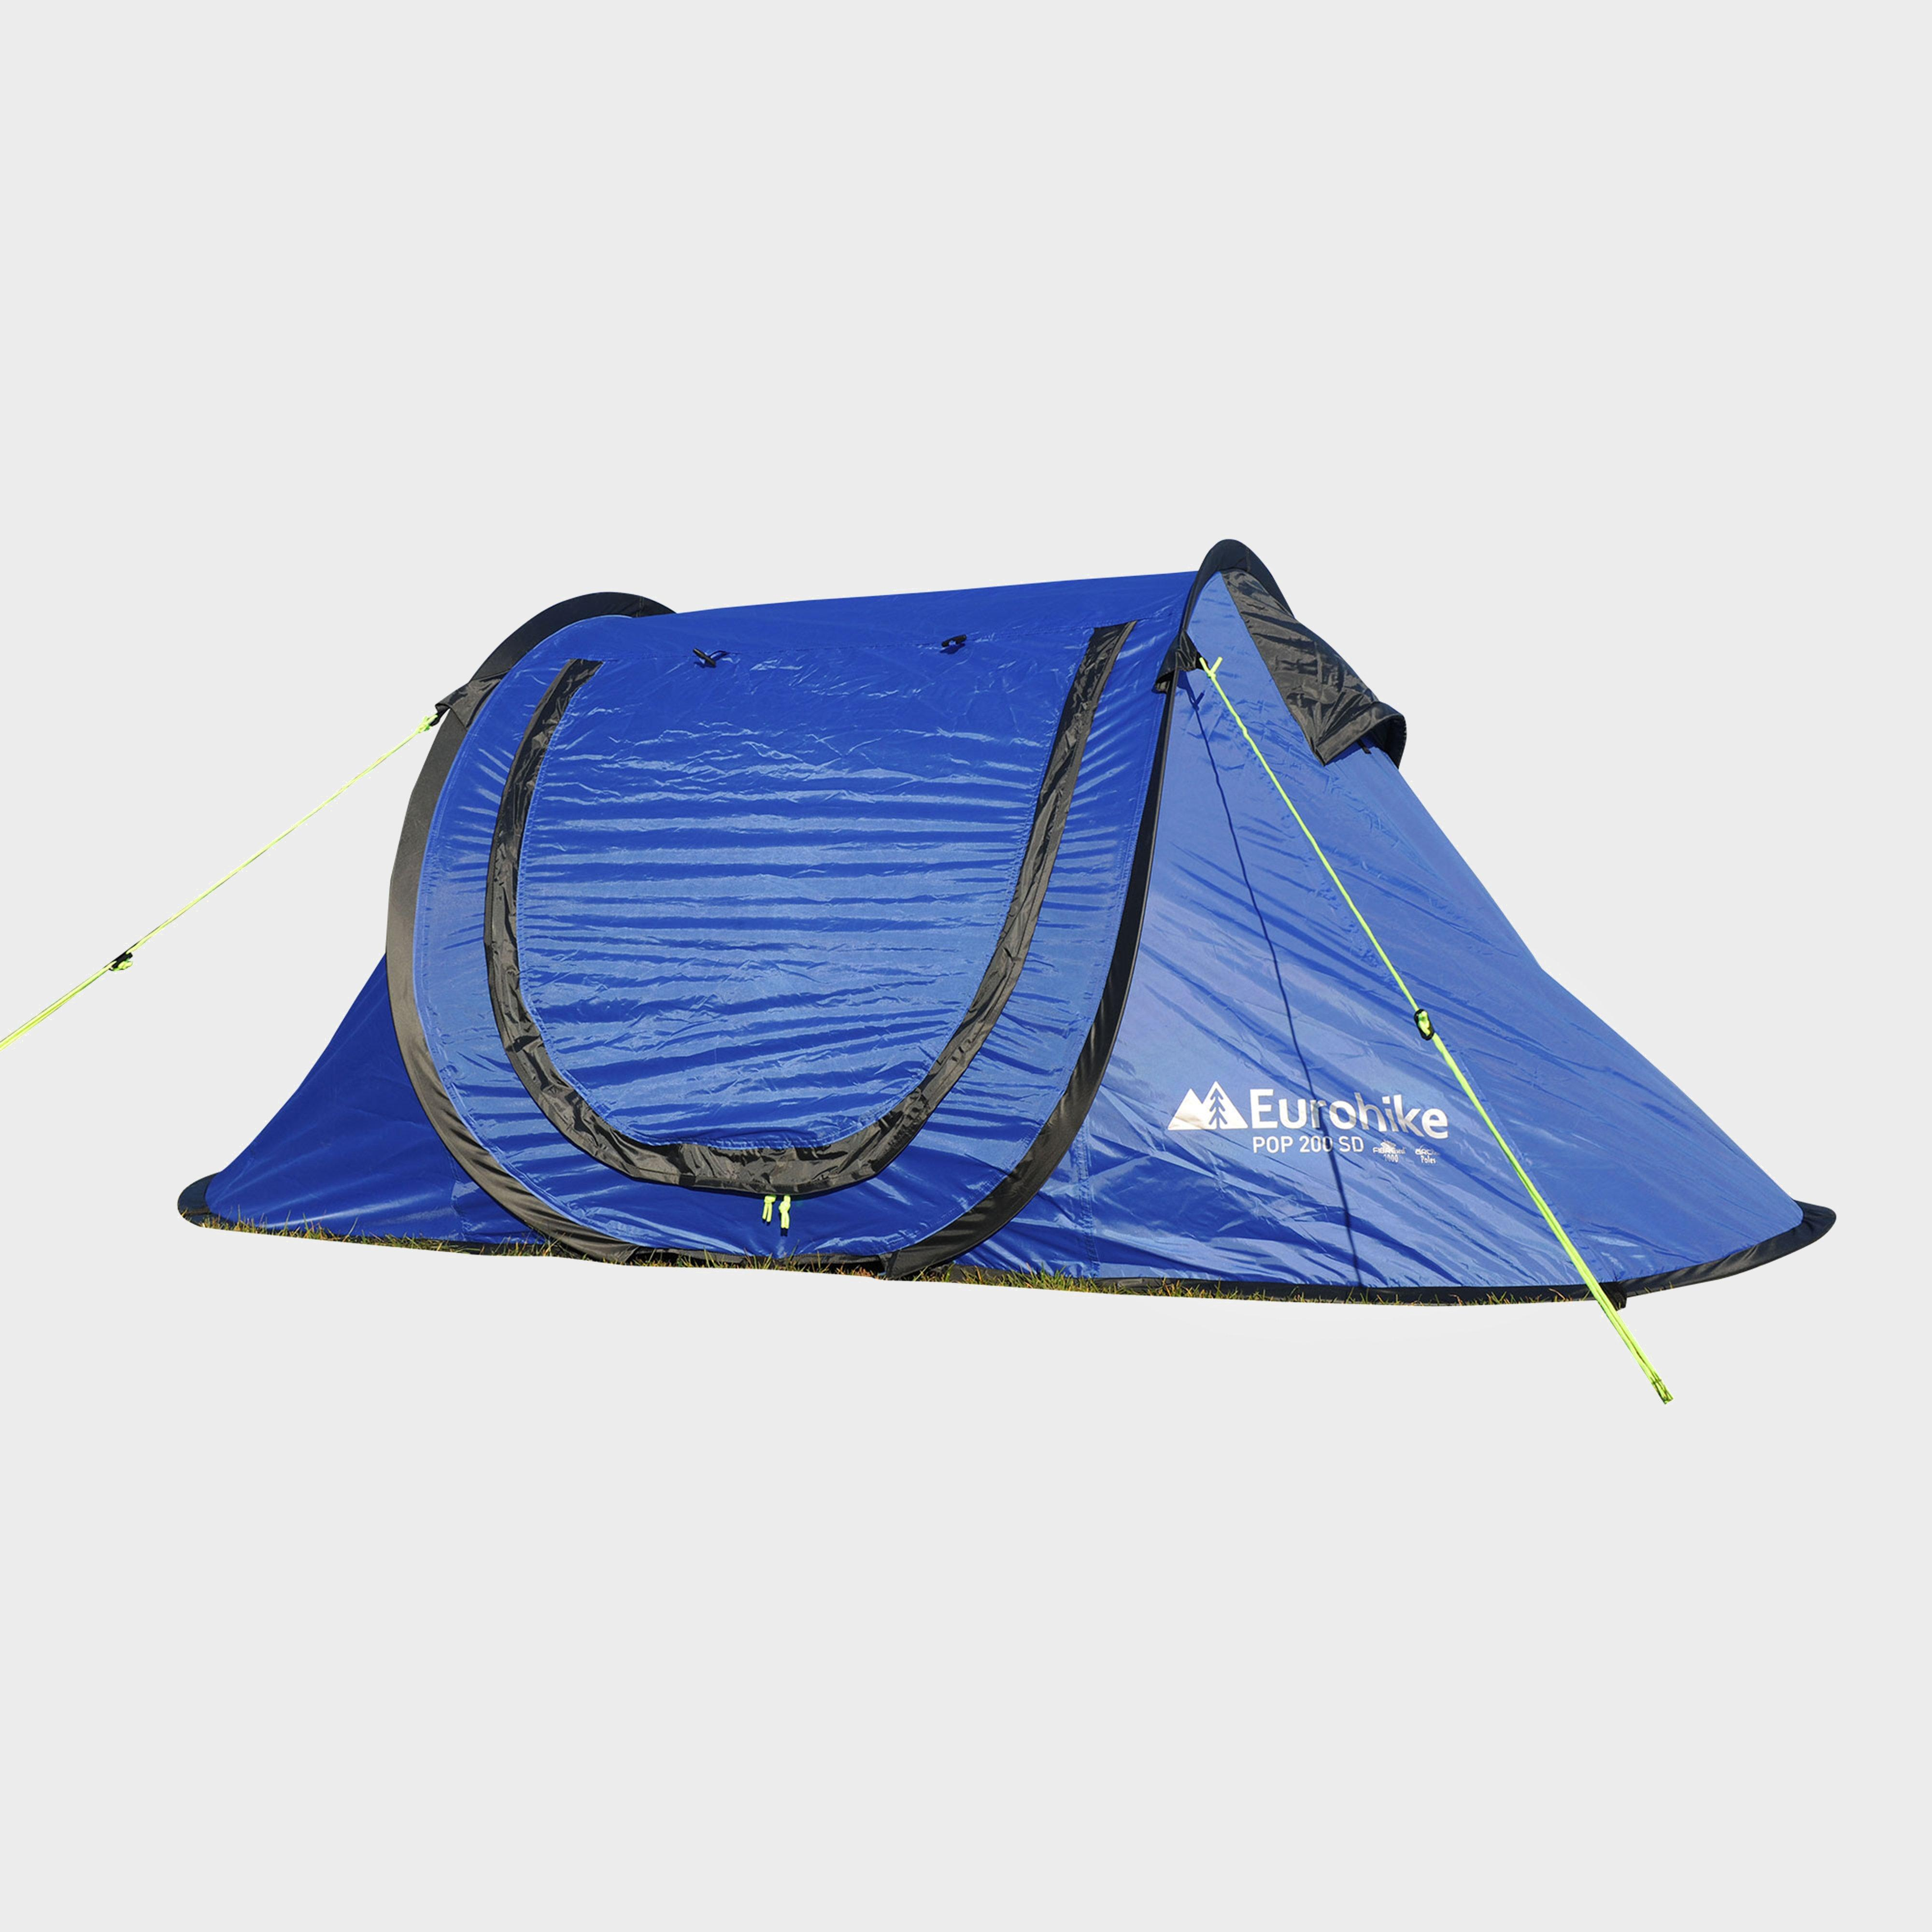 Pop 200 SD Tent & Pop Up Tents | Festival u0026 Backpacking Tents | Millets